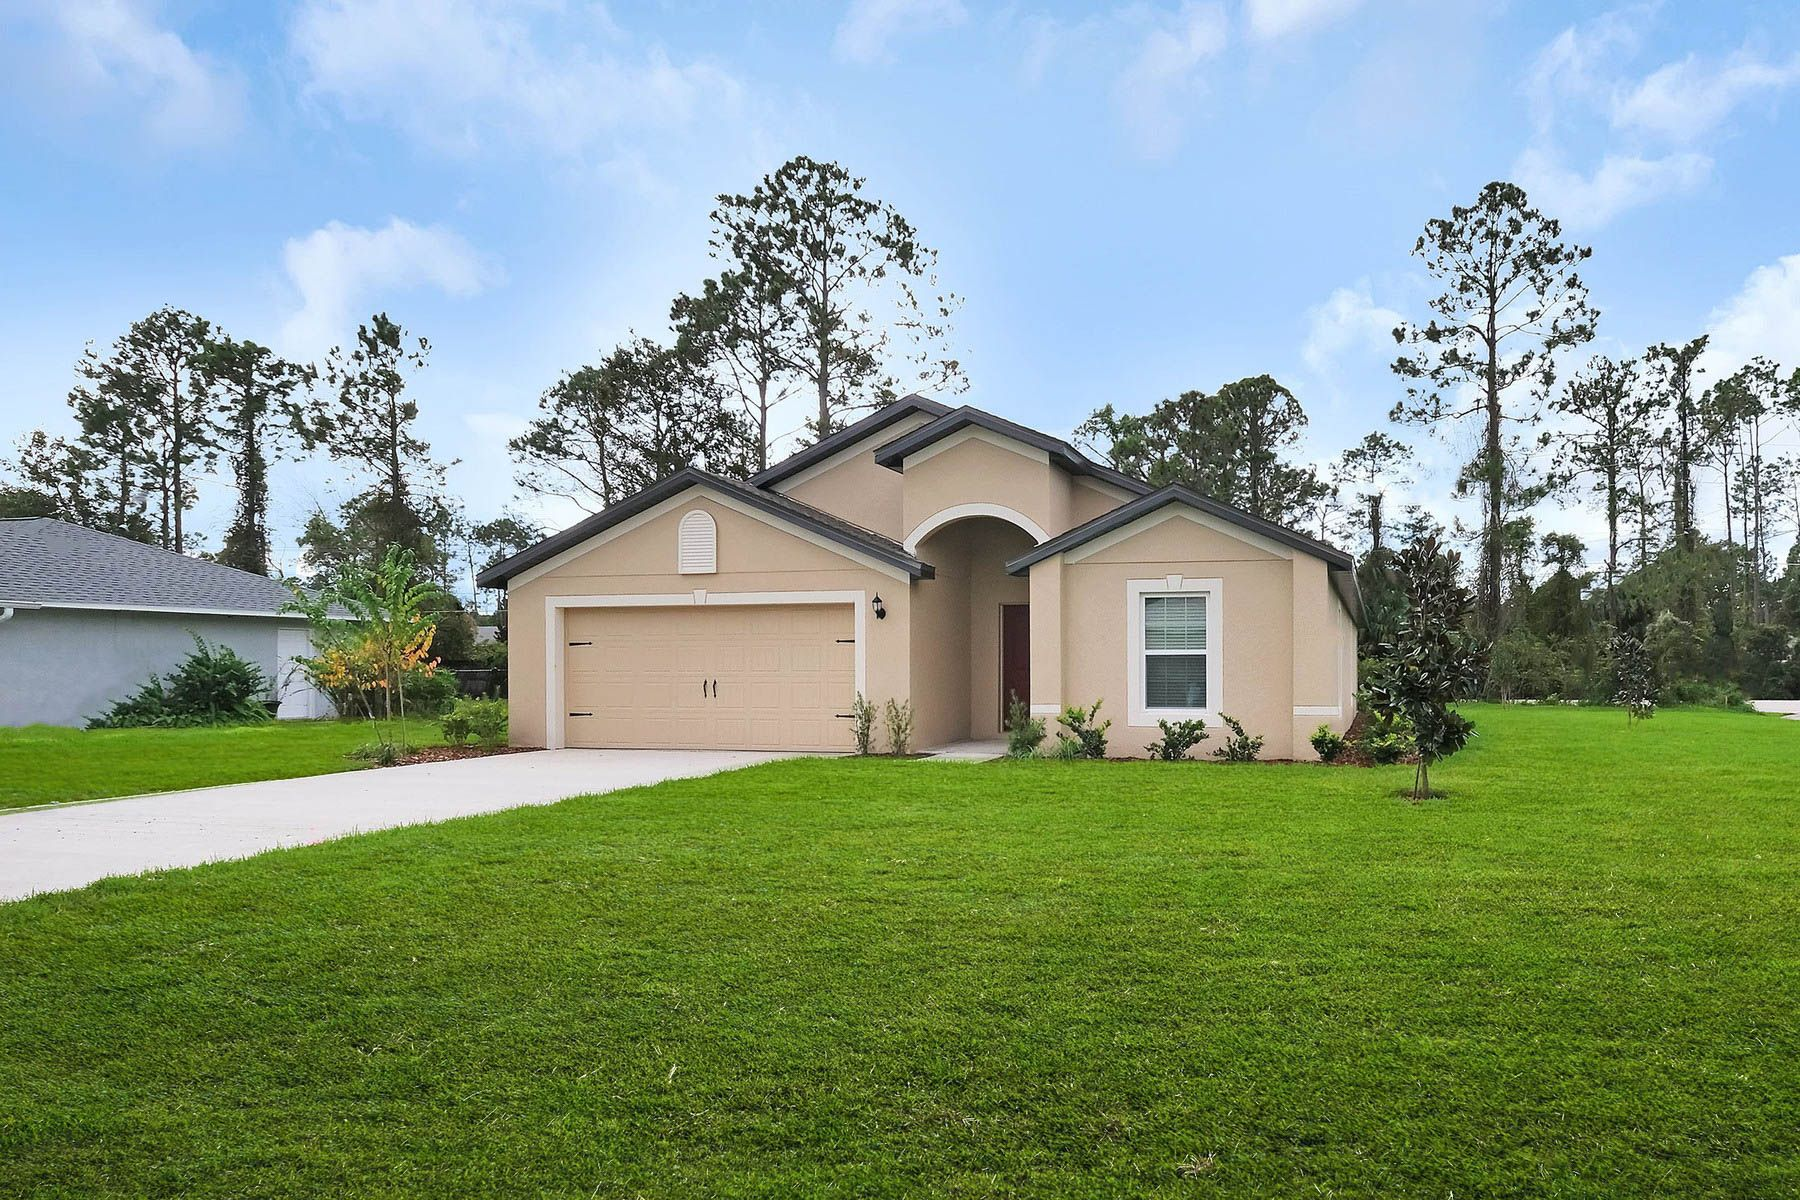 The Estero by LGI Homes:Gorgeous one-story home